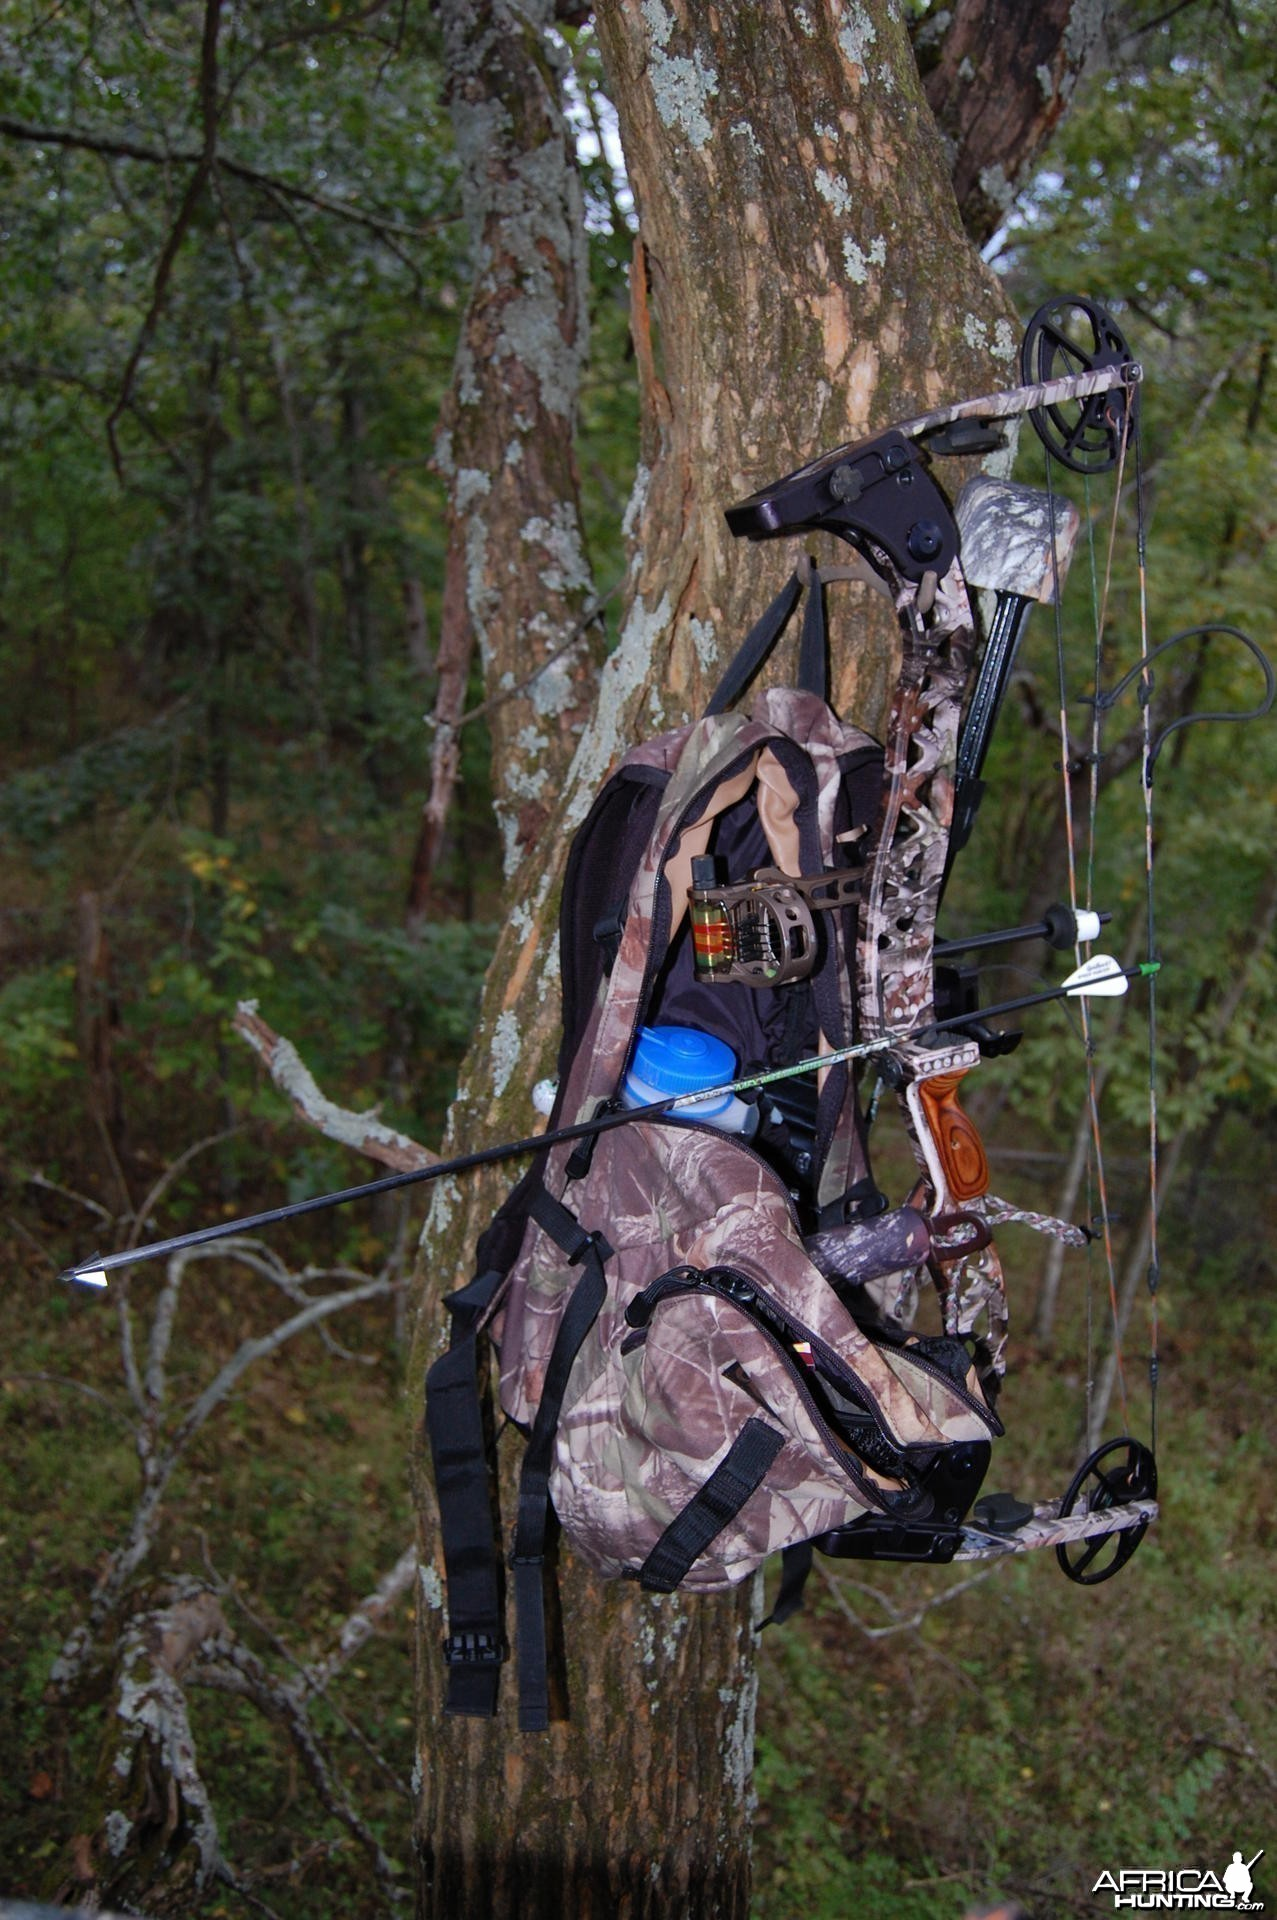 Bowhunting equipment